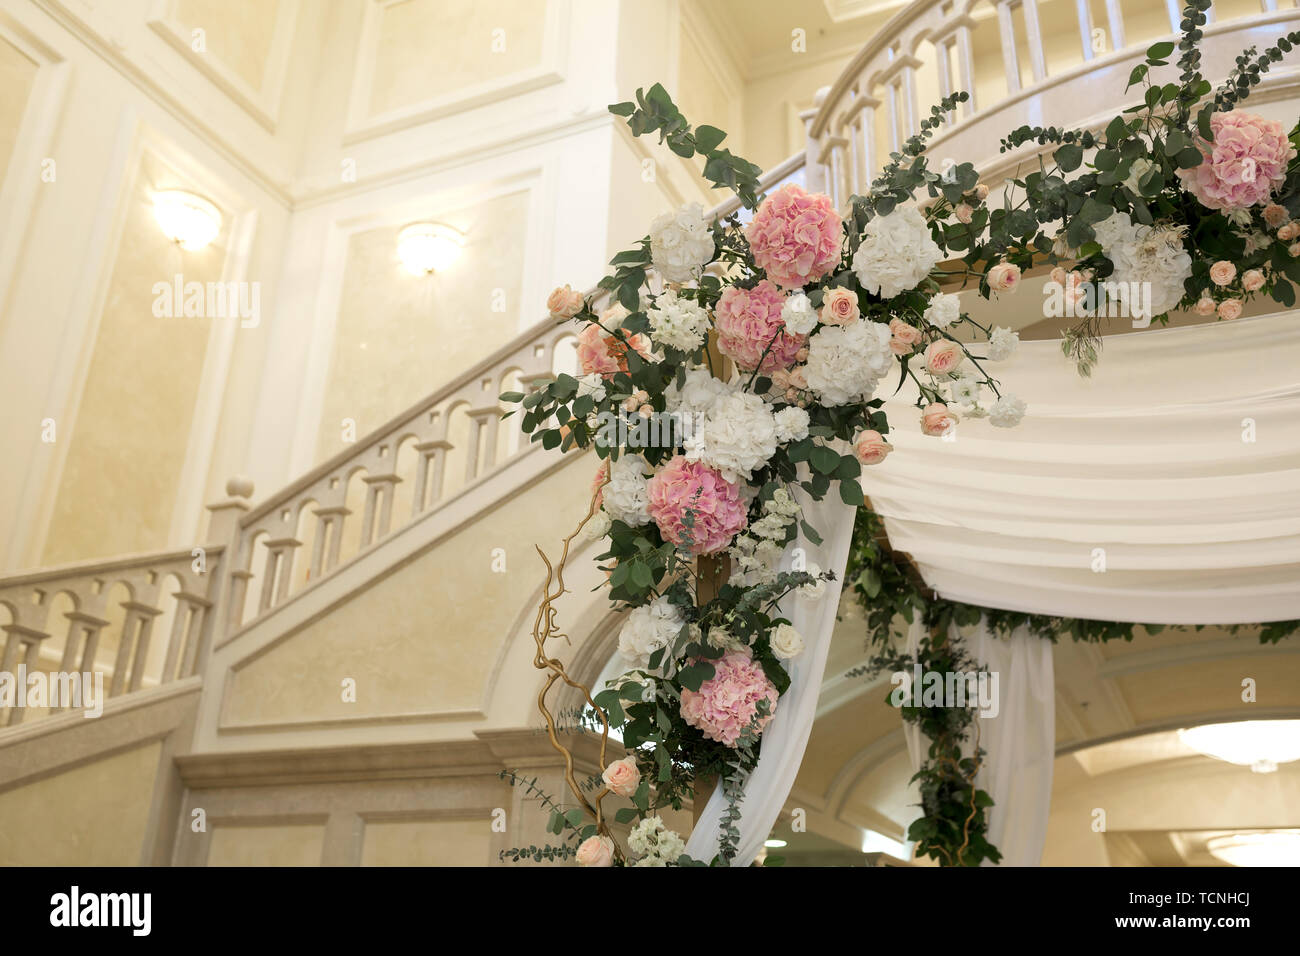 Beautiful wedding huppah decorated with fresh fresh flowers from hydrangea and eucalyptus sheets in a large beautiful wedding hall with a balcony. Wed - Stock Image